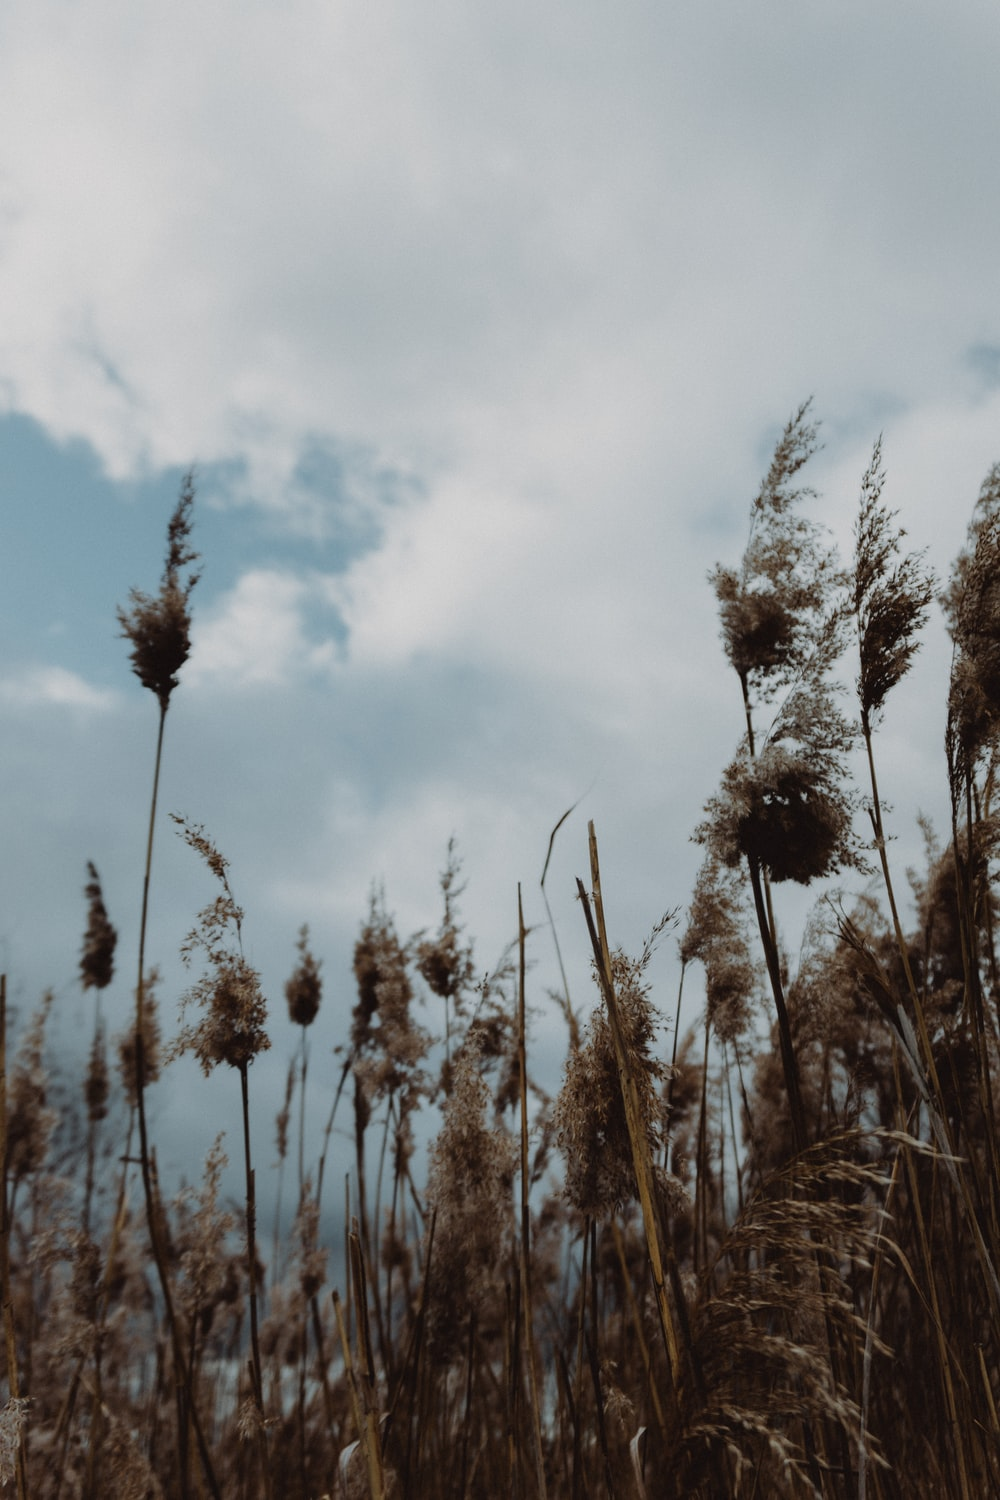 brown wheat field under cloudy sky during daytime